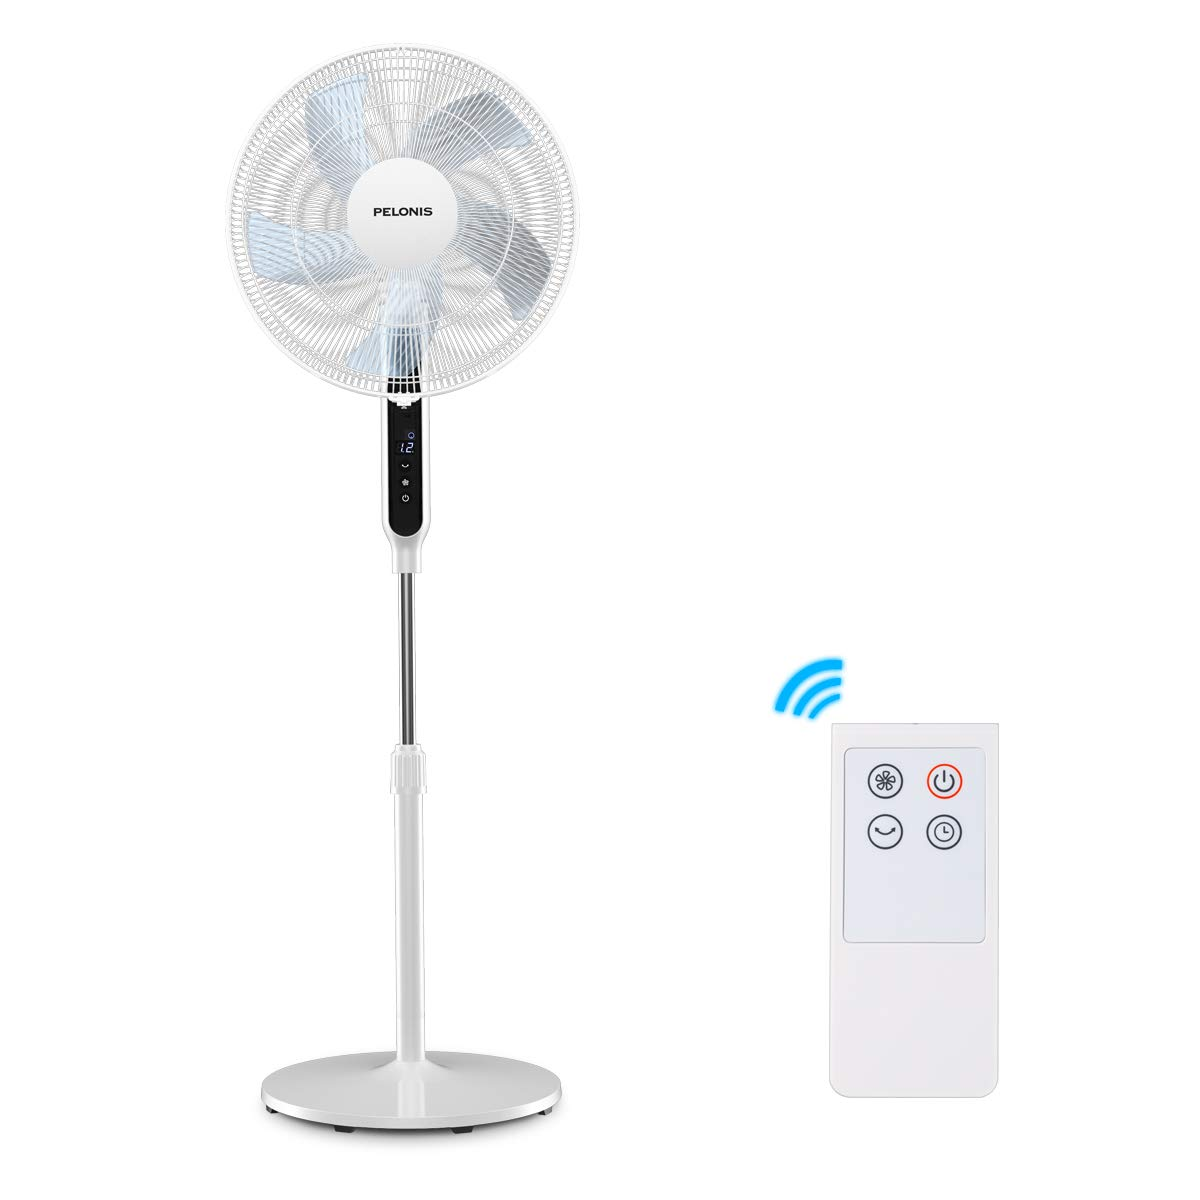 PELONIS Ultra Quiet Sleeping &Baby, High Energy Efficiency Standing Speed, 12-Hour Timer, Remote Control, and Adjustable Heights, FS40-19PRD, 16 Inch, 16-inch DC Motor Pedestal Fan White